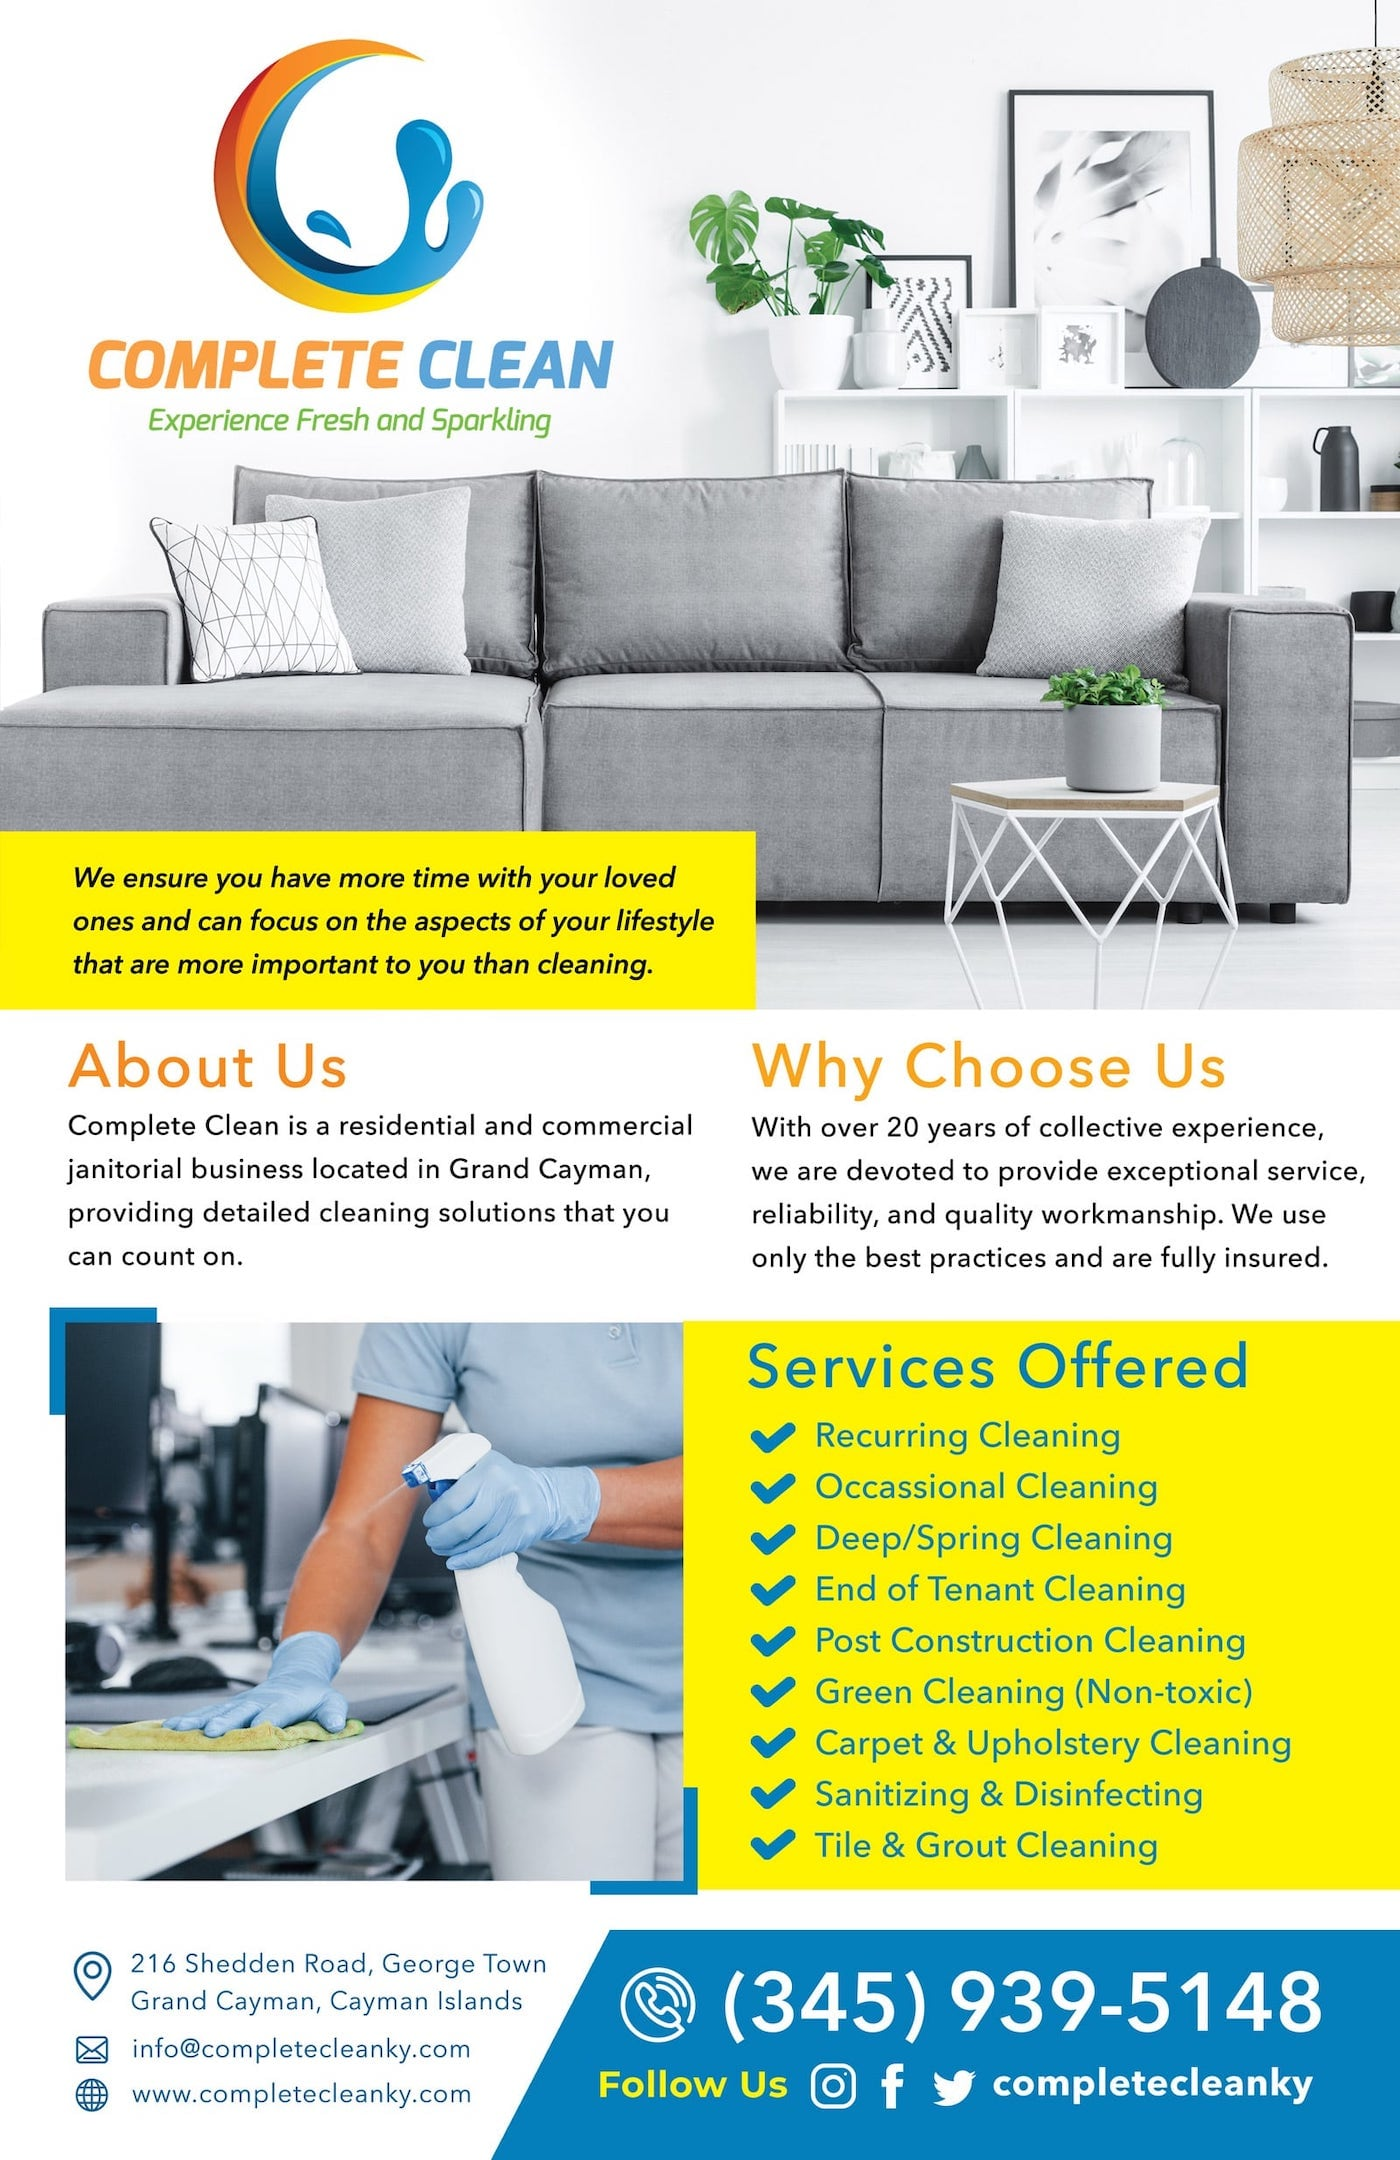 Complete Clean - Cayman Cleaning Services for Homes, Rentals, Apartments, Condos